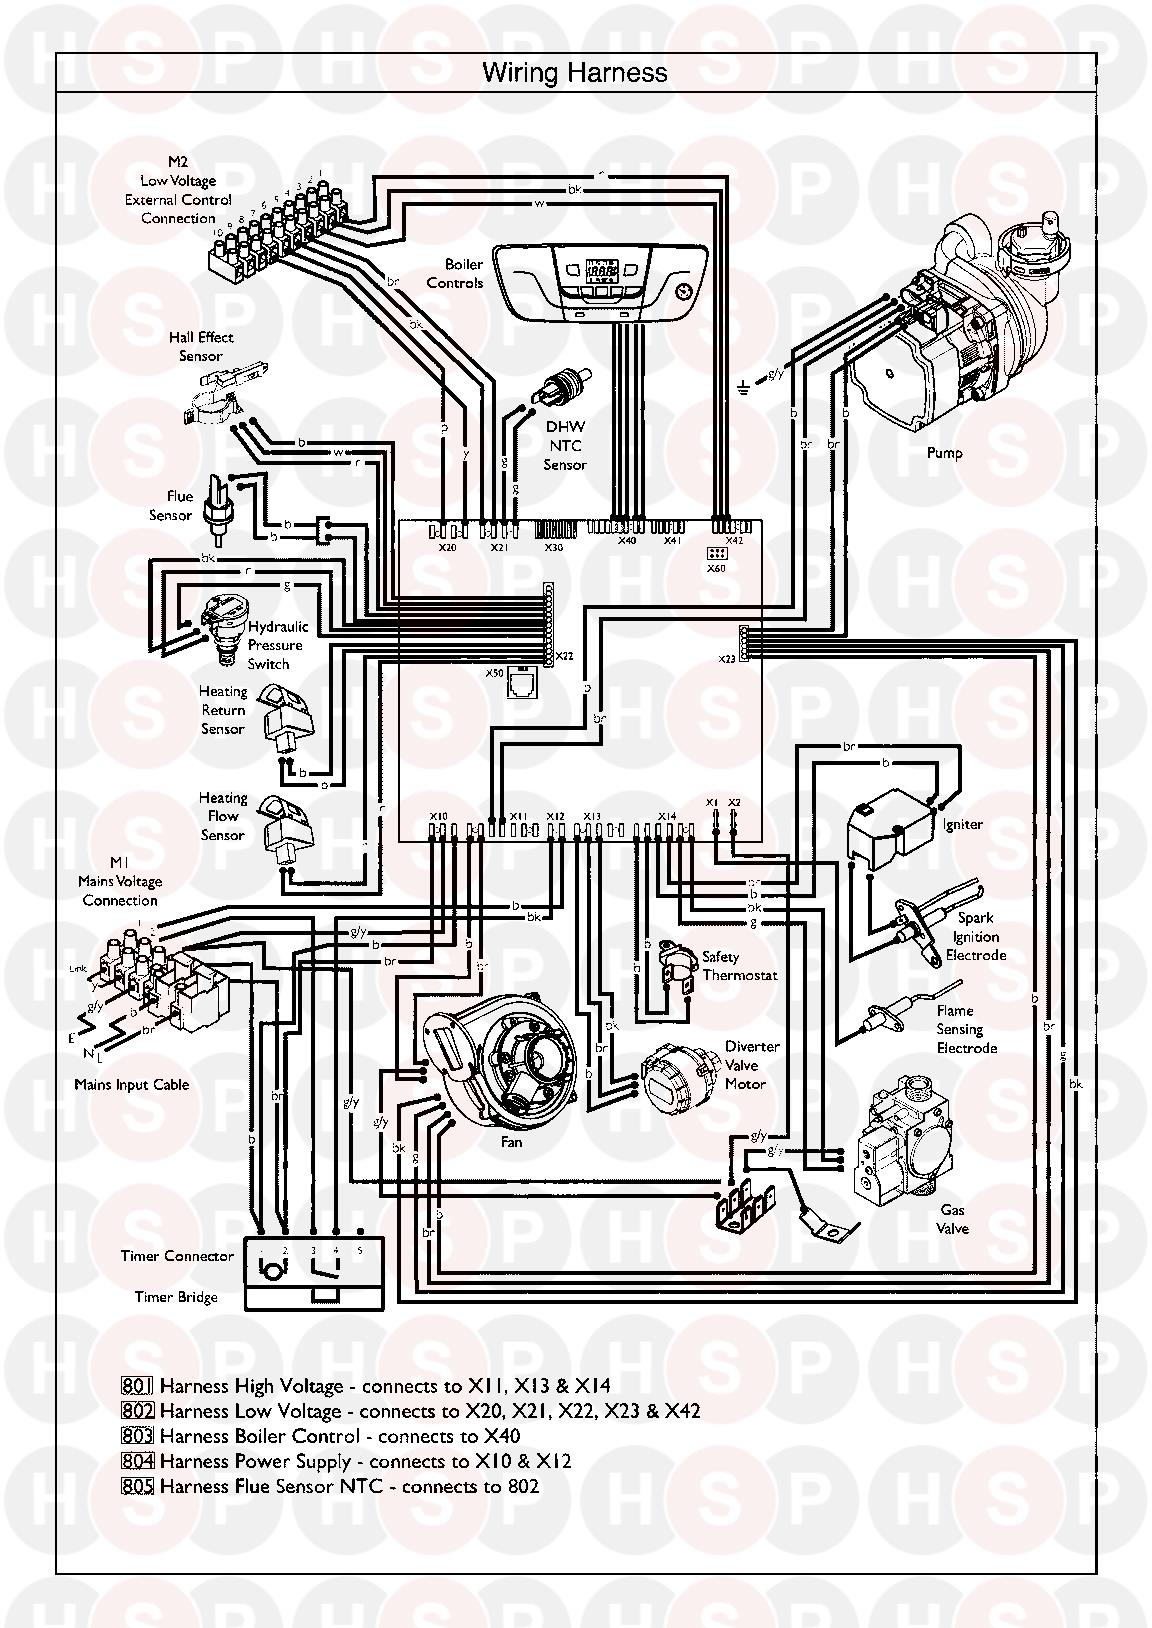 Baxi 24 Combi Erp Wiring Harness Diagram Heating Spare Parts Flame Sensor Click The To Open It On A New Page